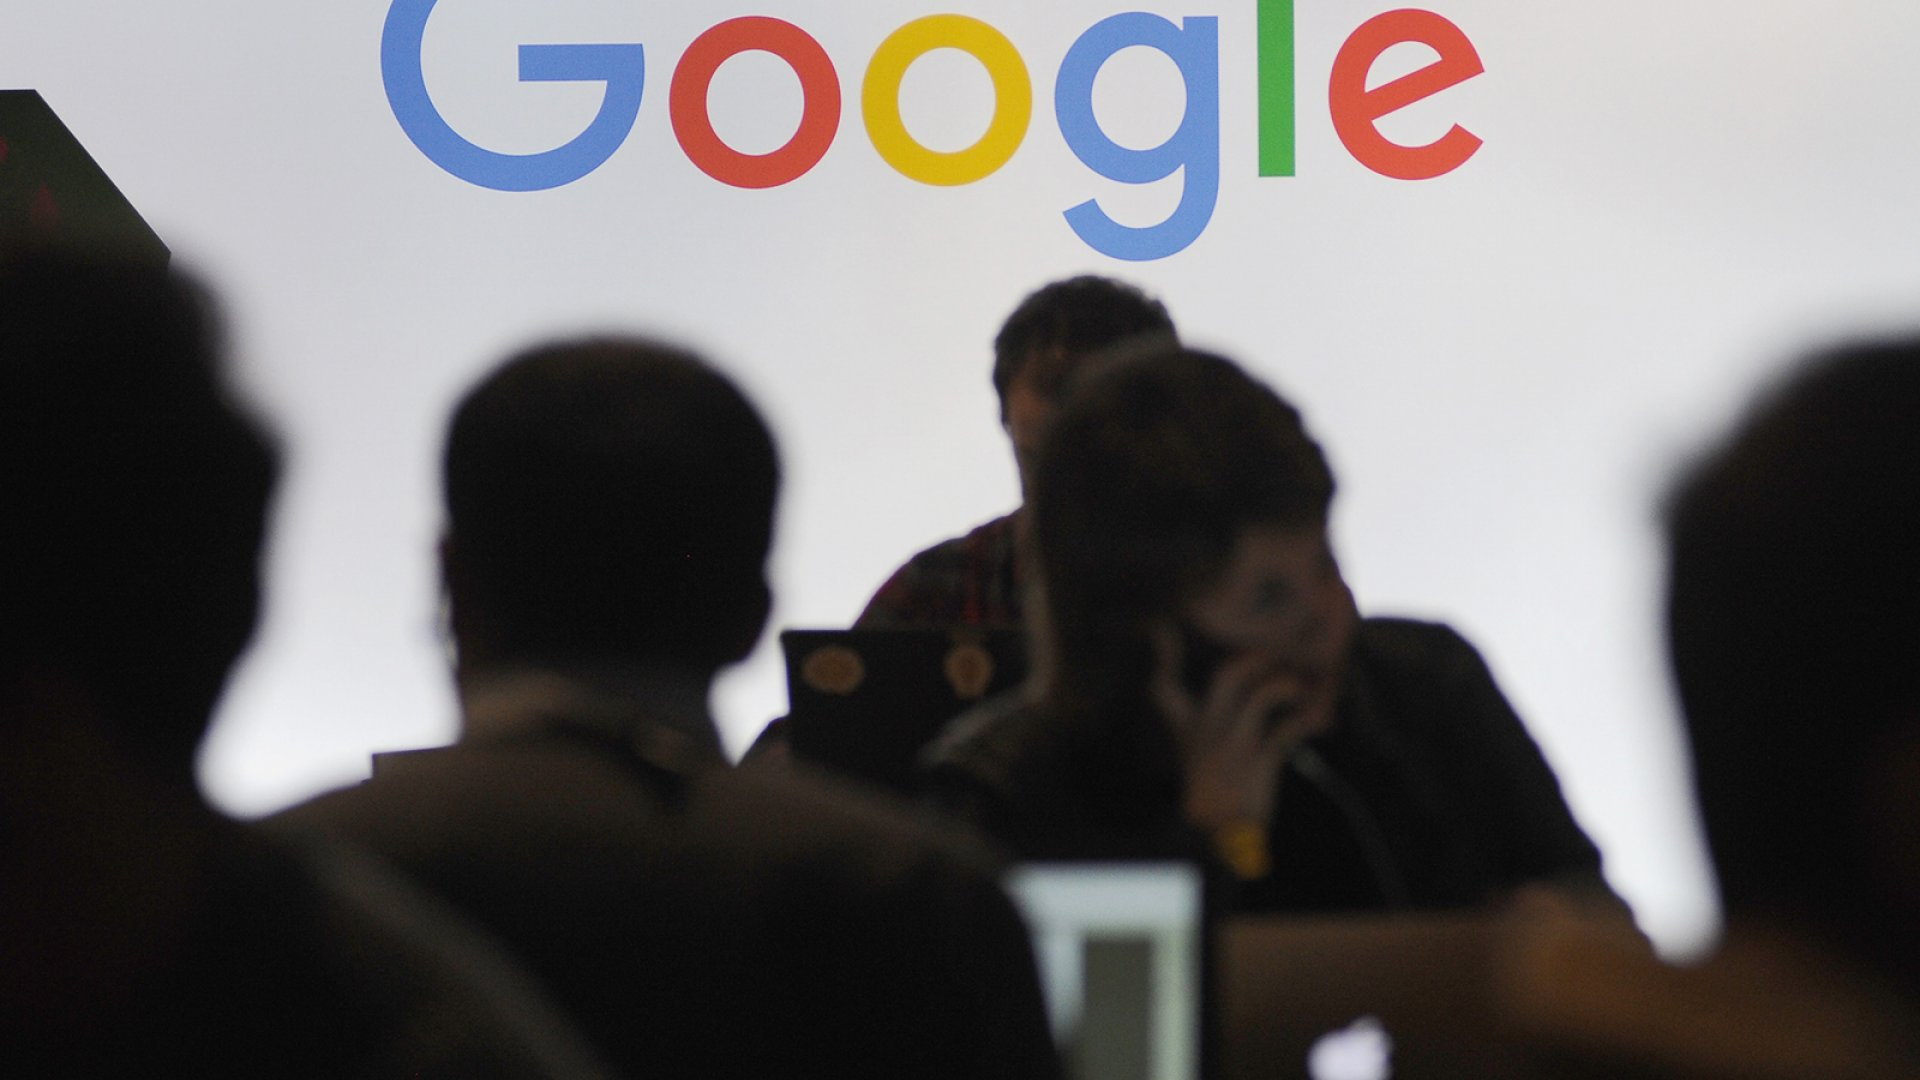 Google's Other Ugly Secret: Some Managers Keep Blacklists